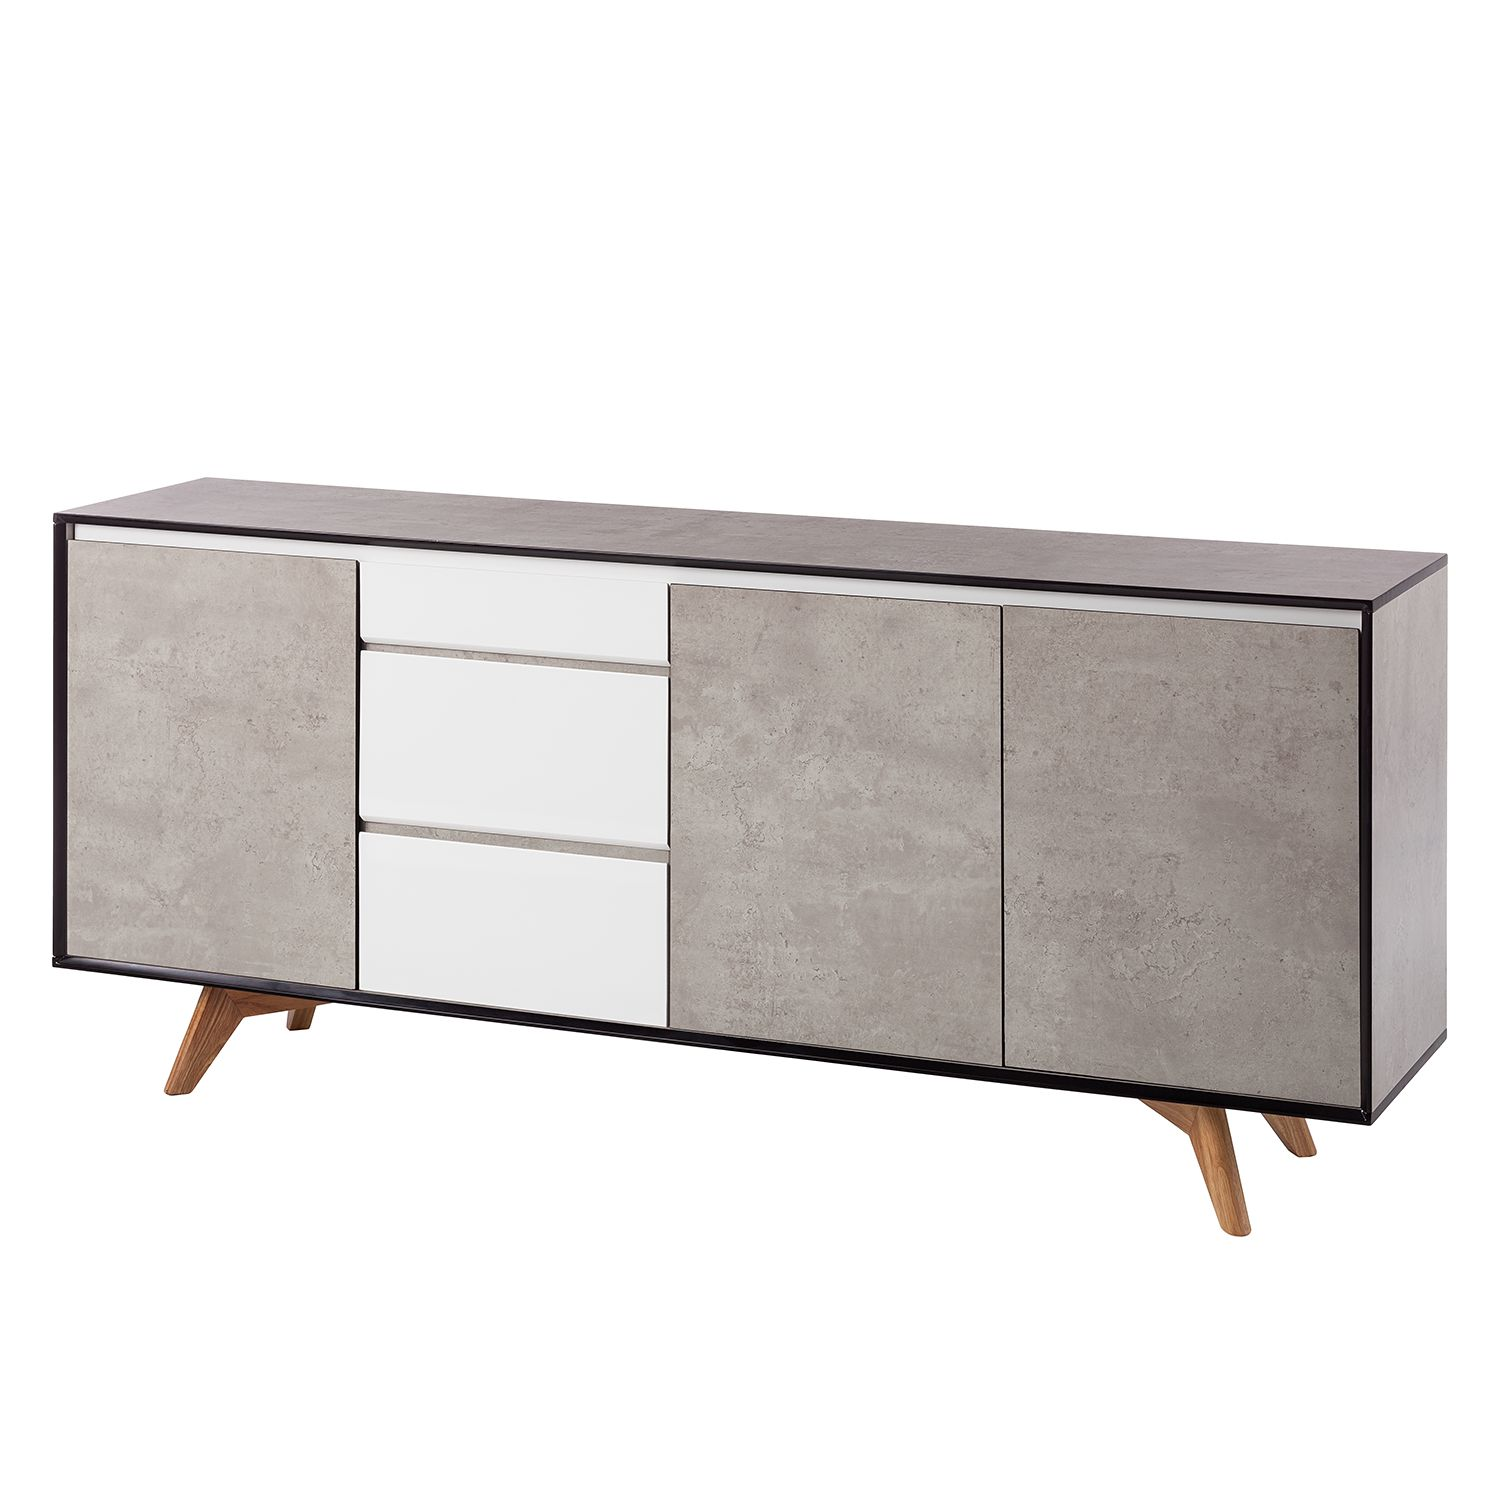 Dressoir Karay, Moerteens